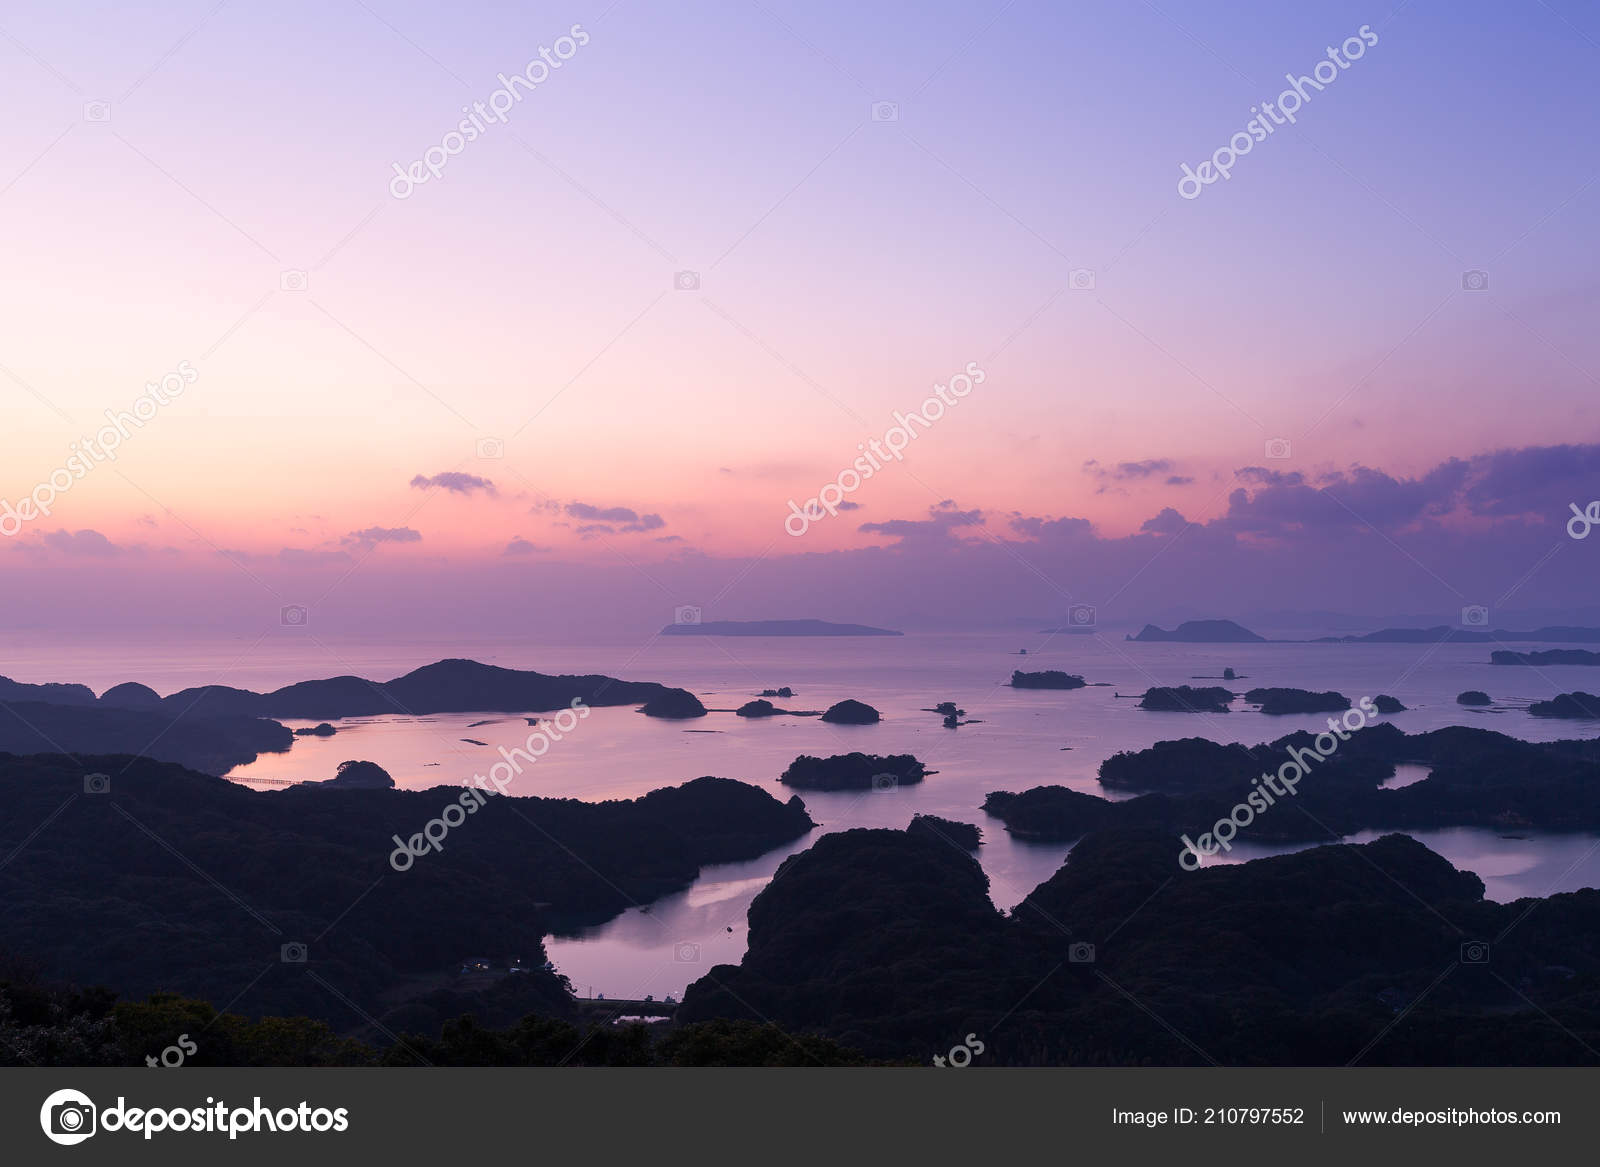 Kujuku Islands Sunset Japan Stock Photo C Leungchopan 210797552